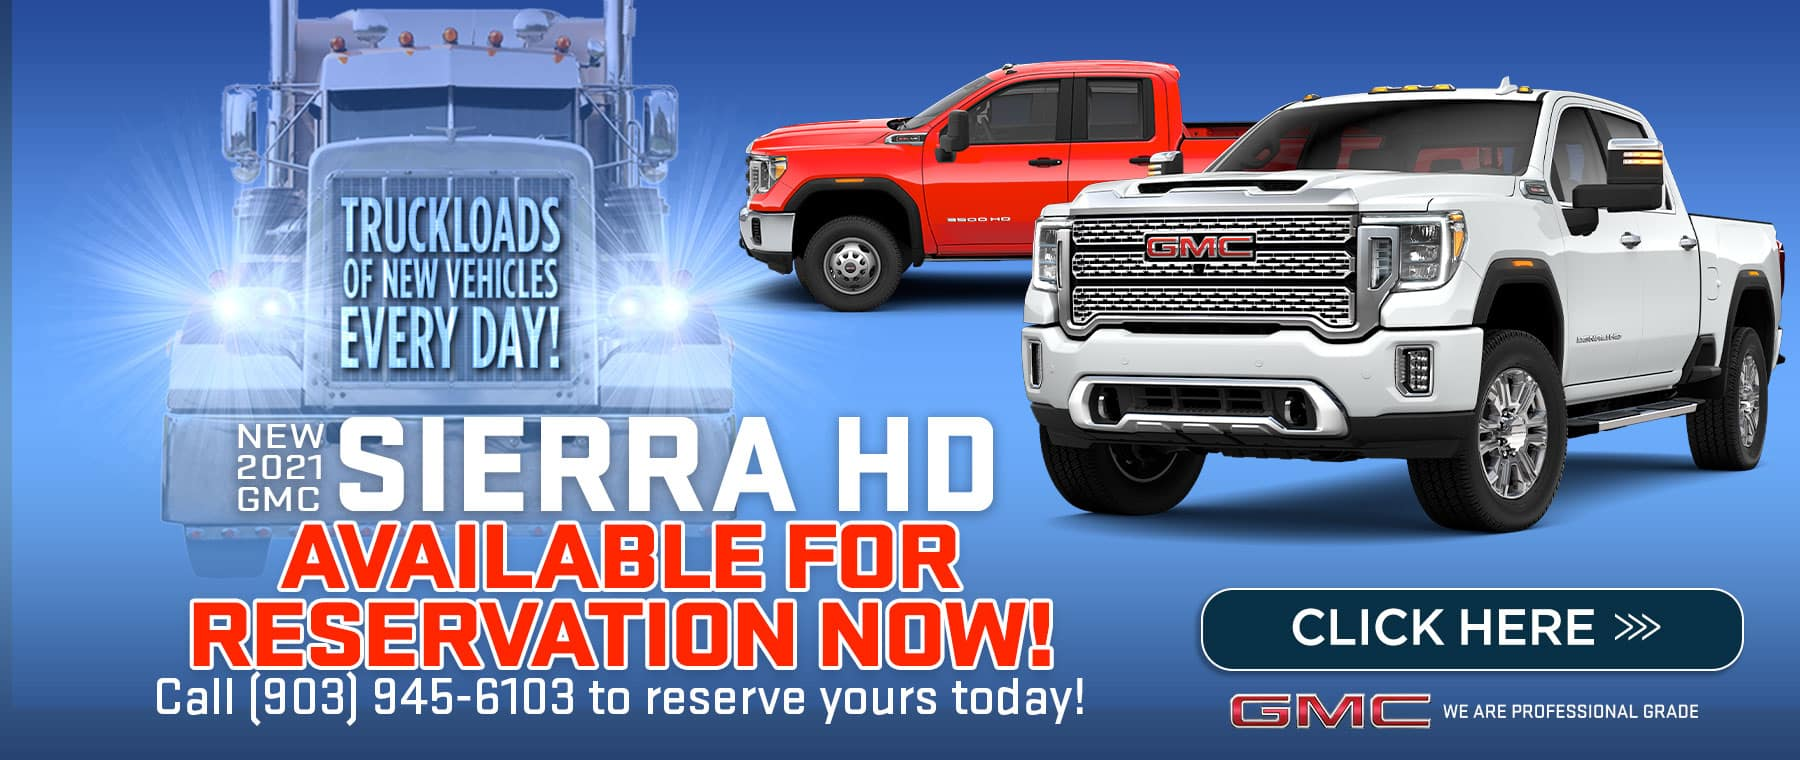 New 2021 GMC Sierra HD - Available for reservation now